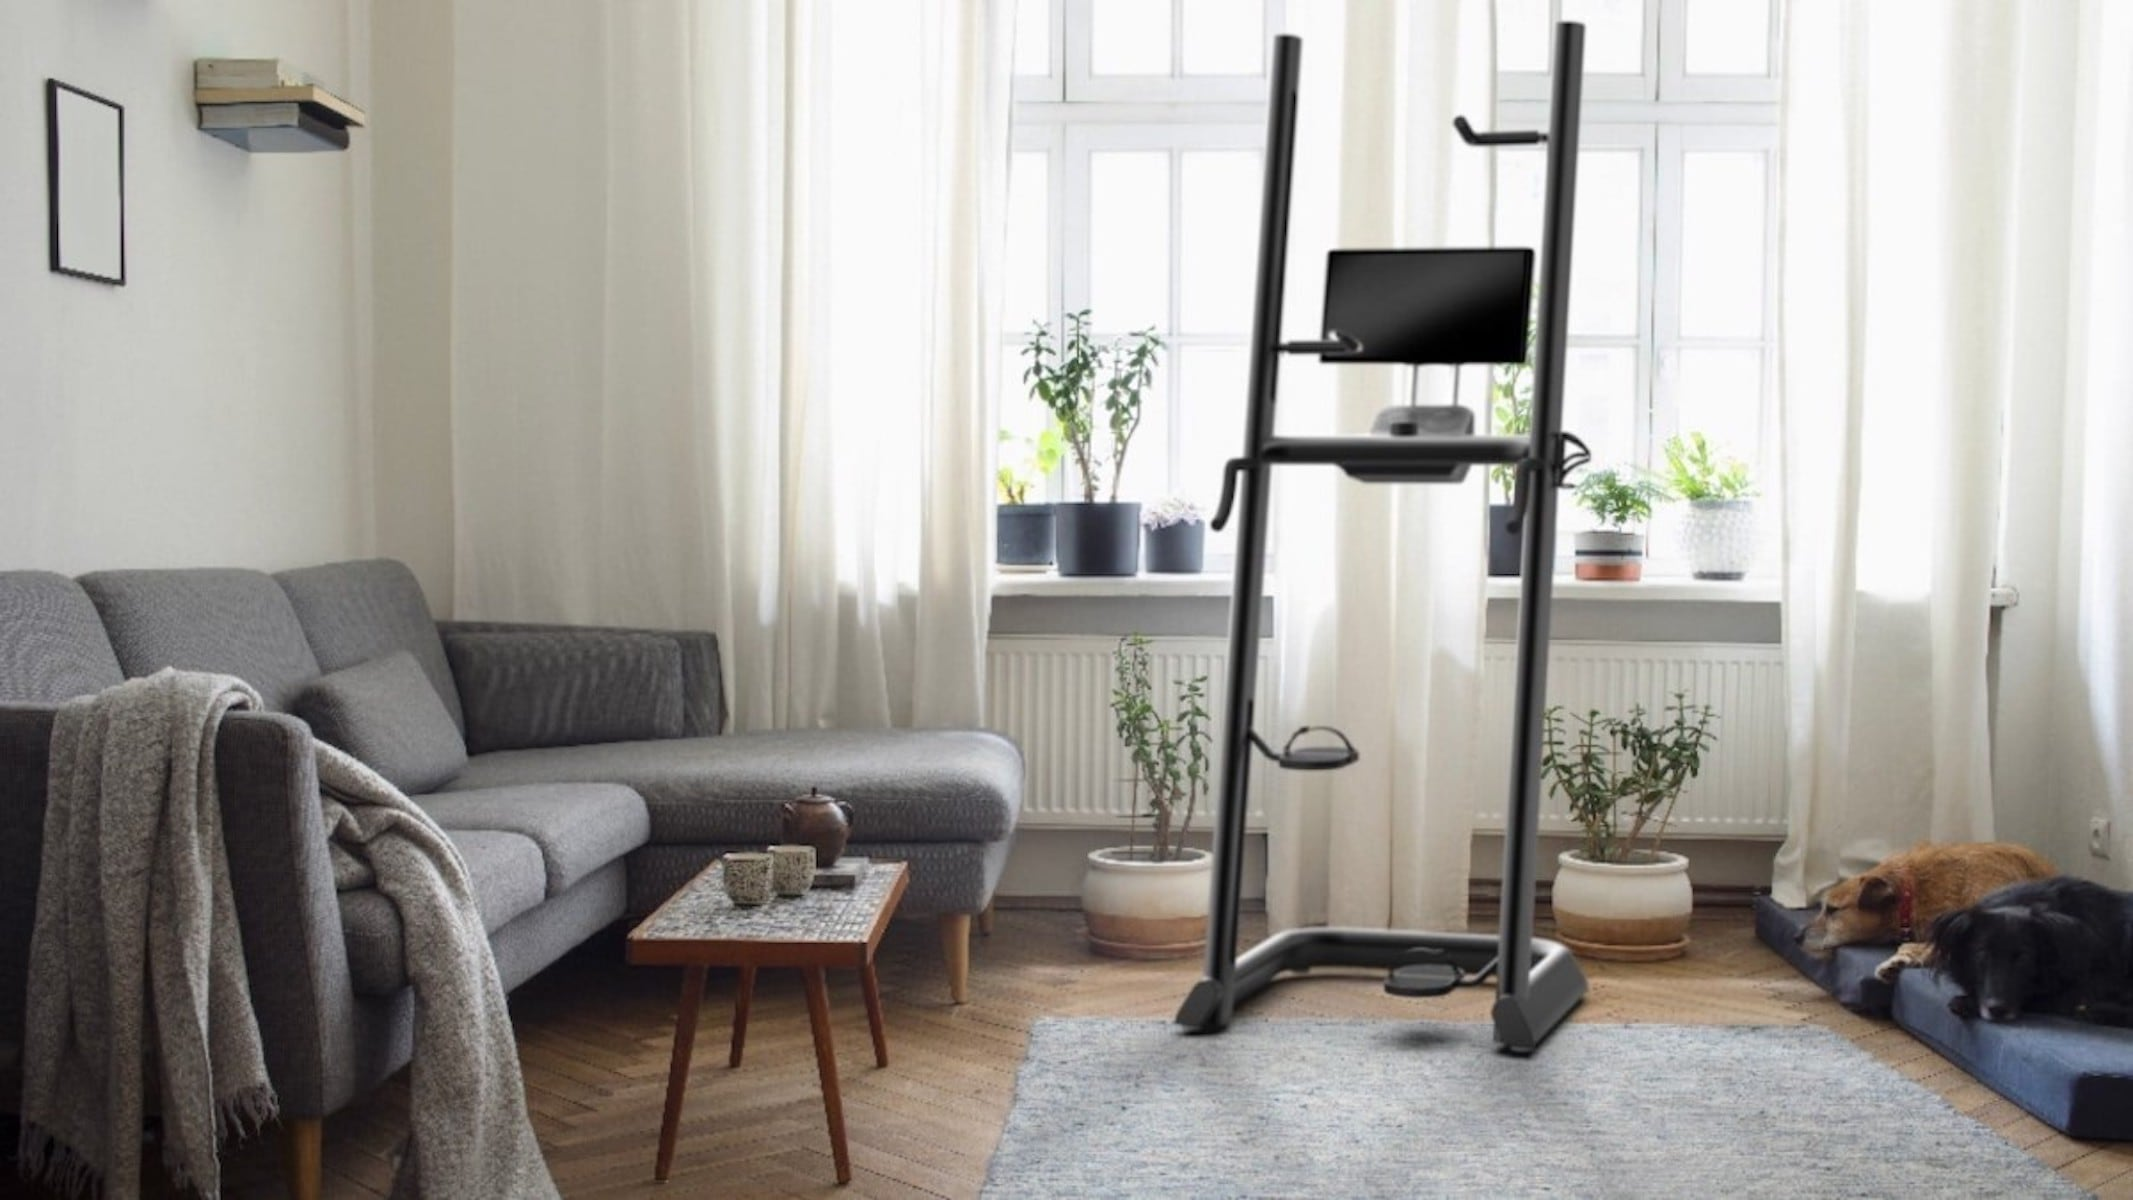 CLMBER Connected Climbing Machine in the House